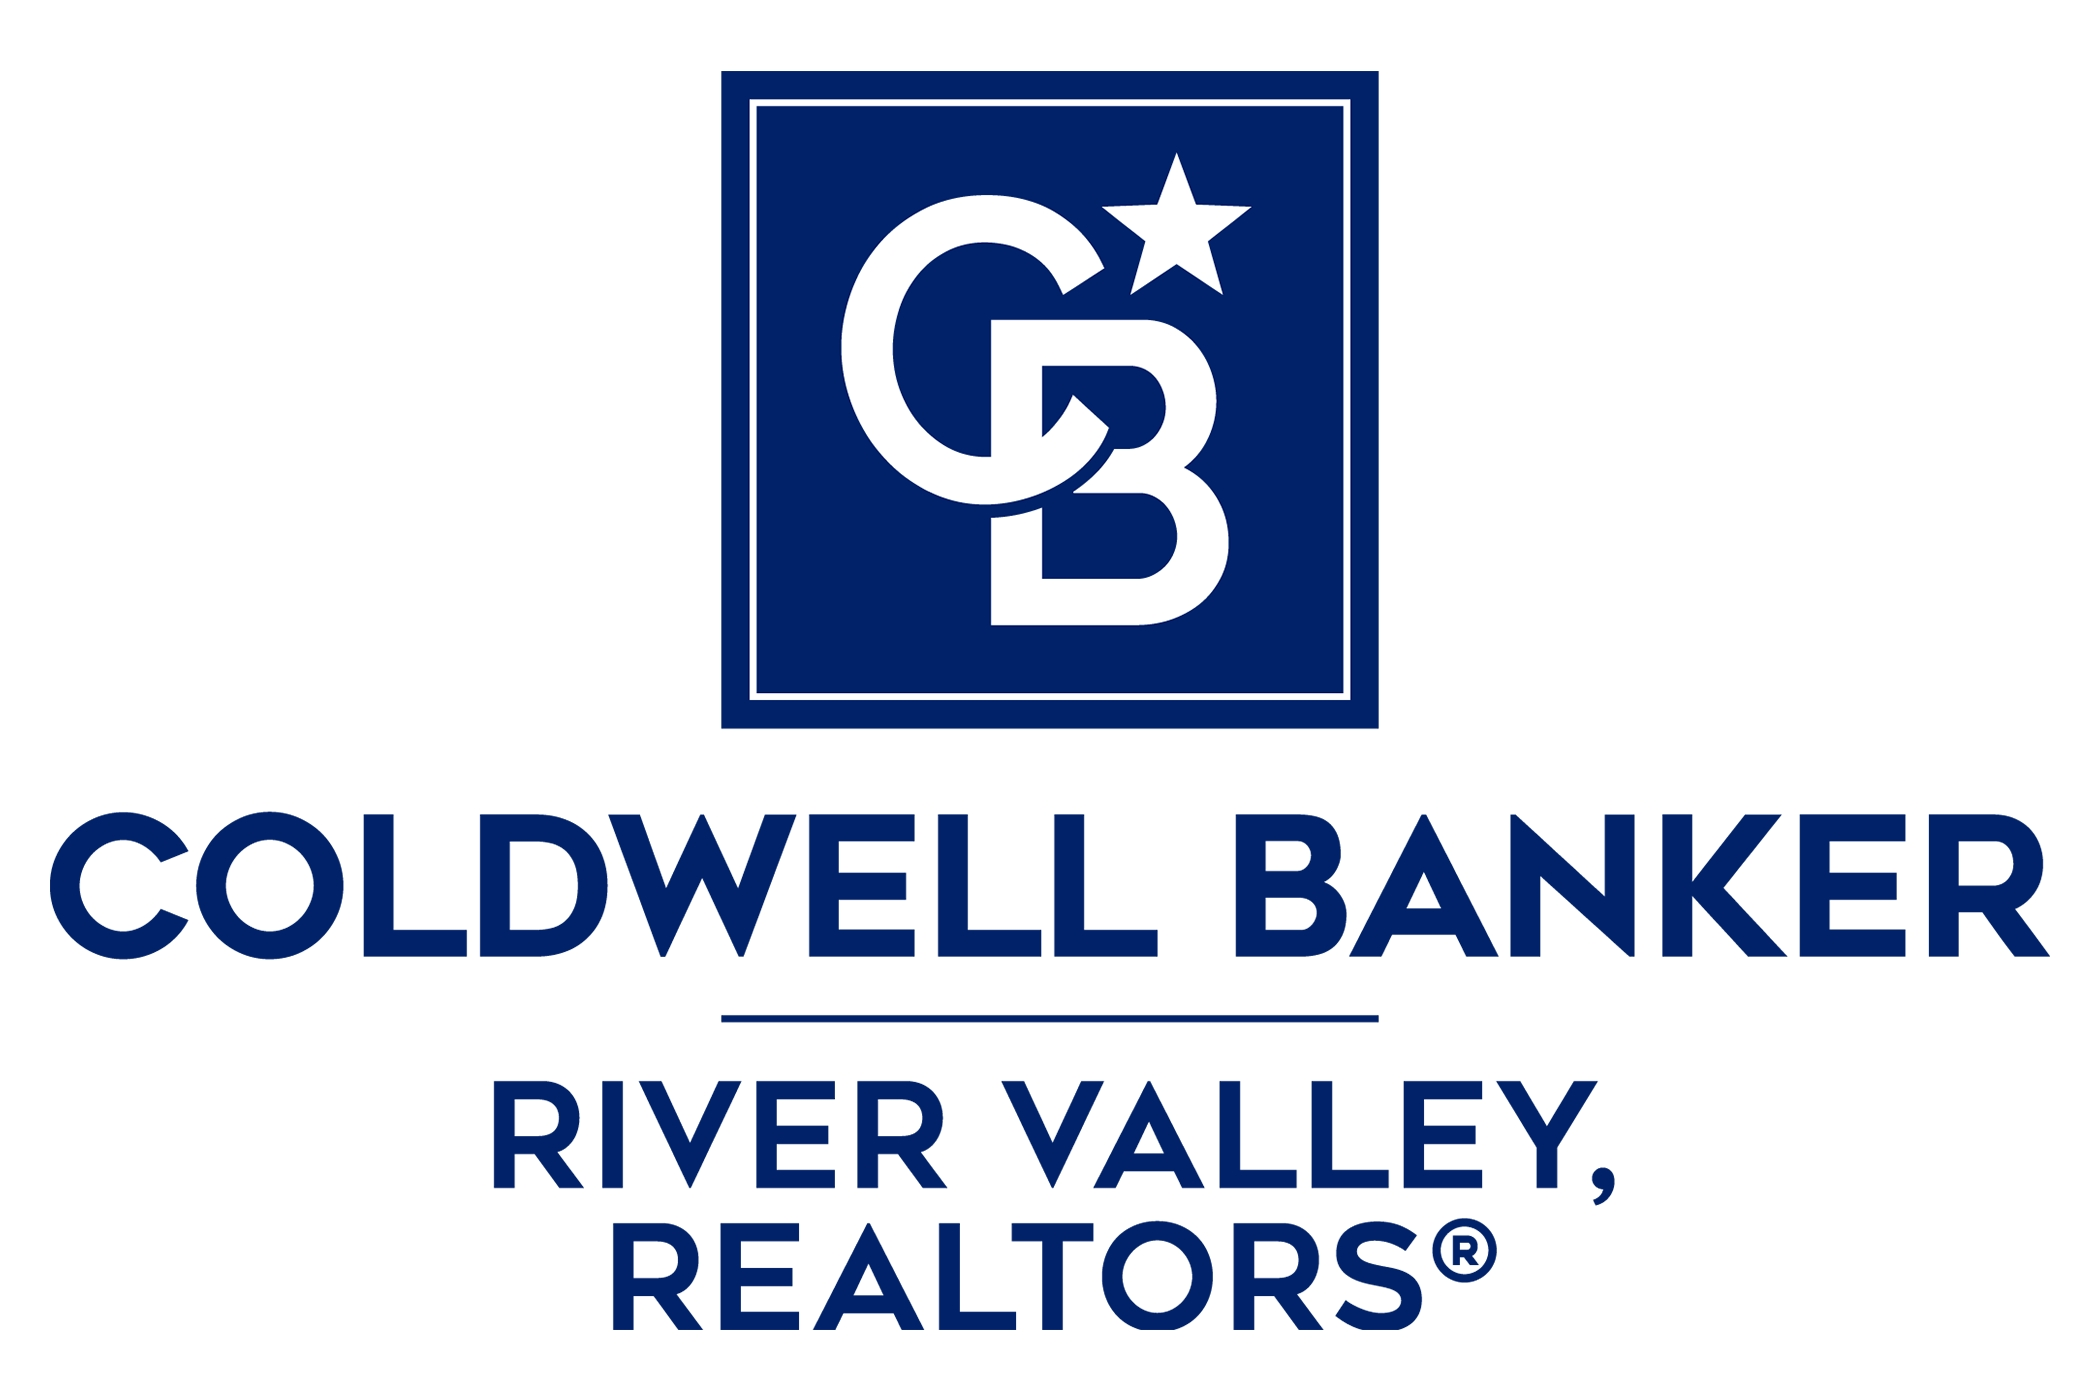 Parker Holey - Coldwell Banker River Valley Realtors